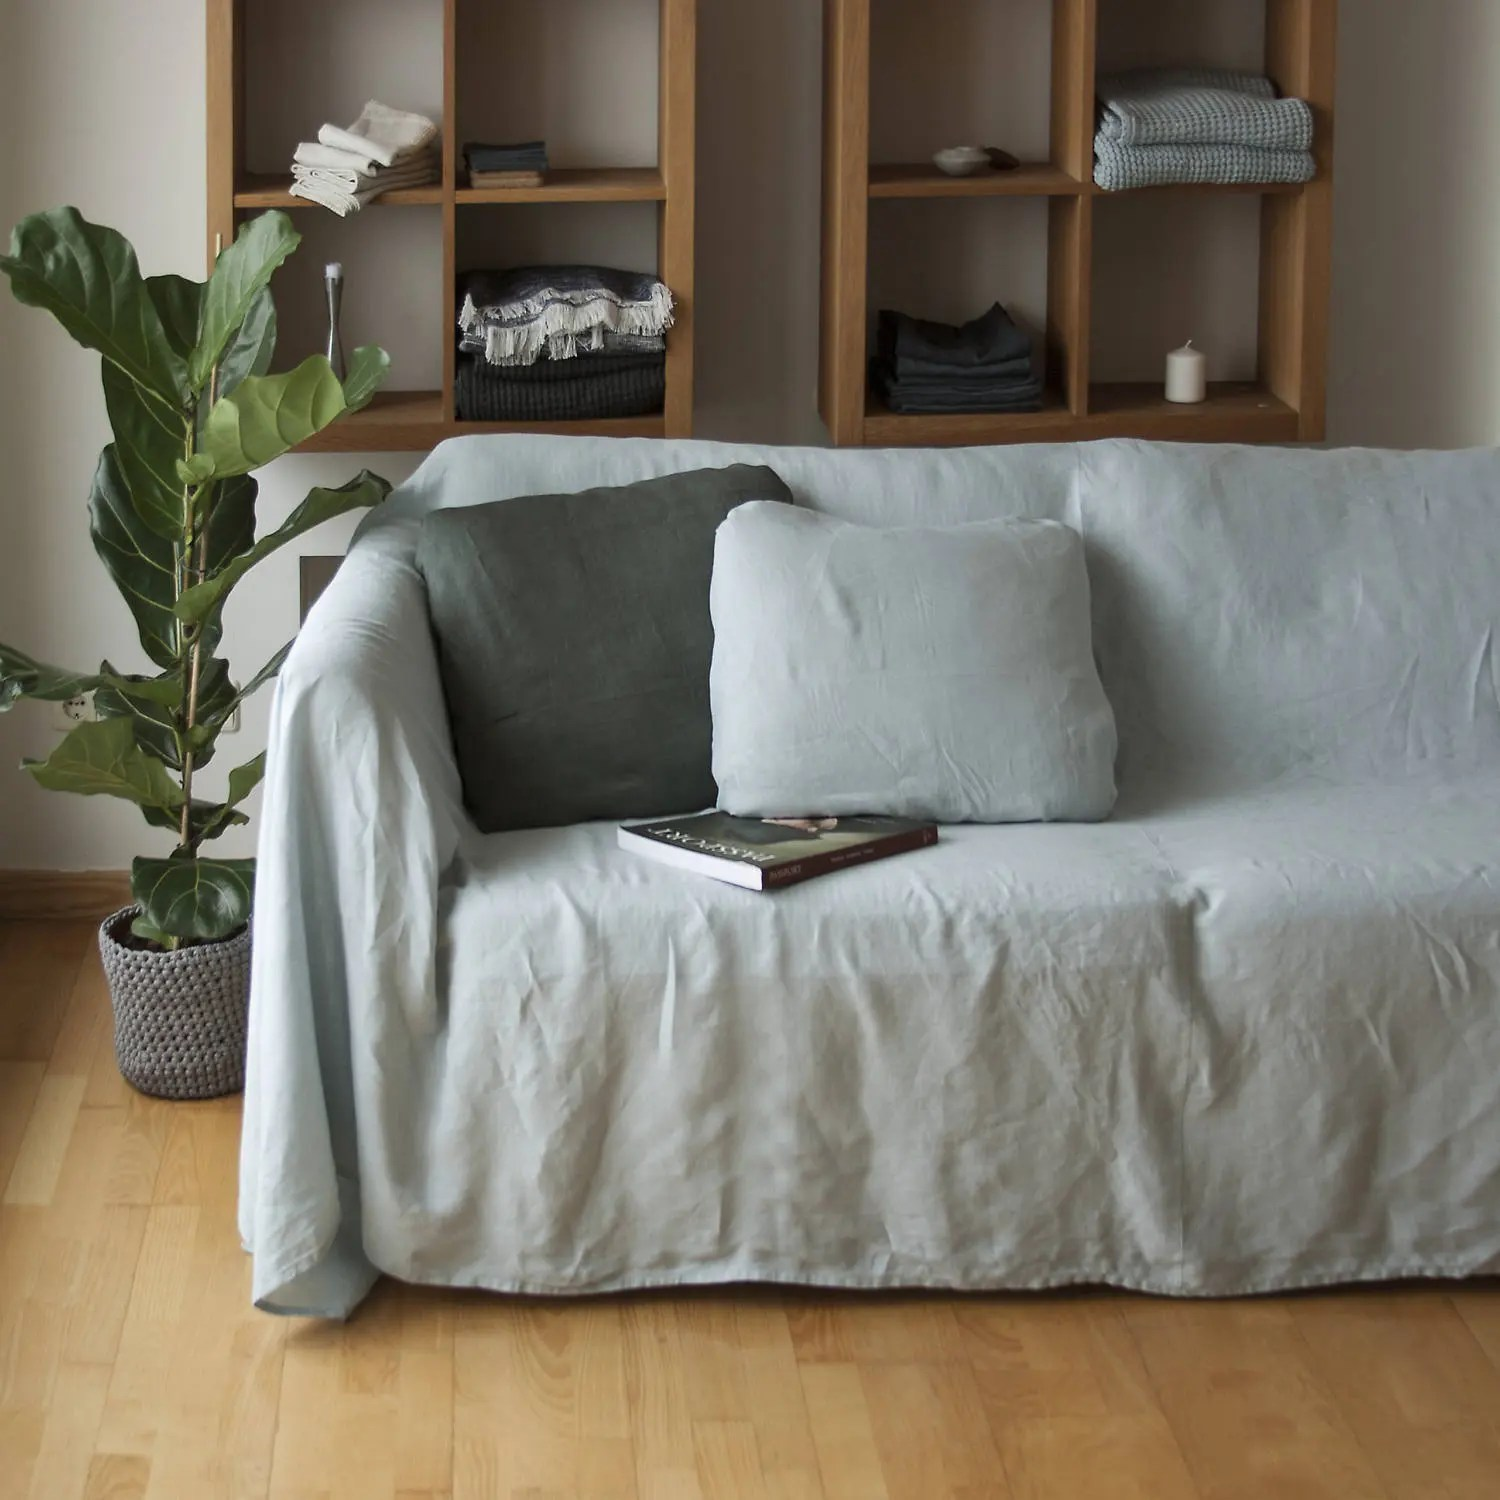 linen sofa slipcover slumberland recliners couch cover bedspread natural etsy image 0